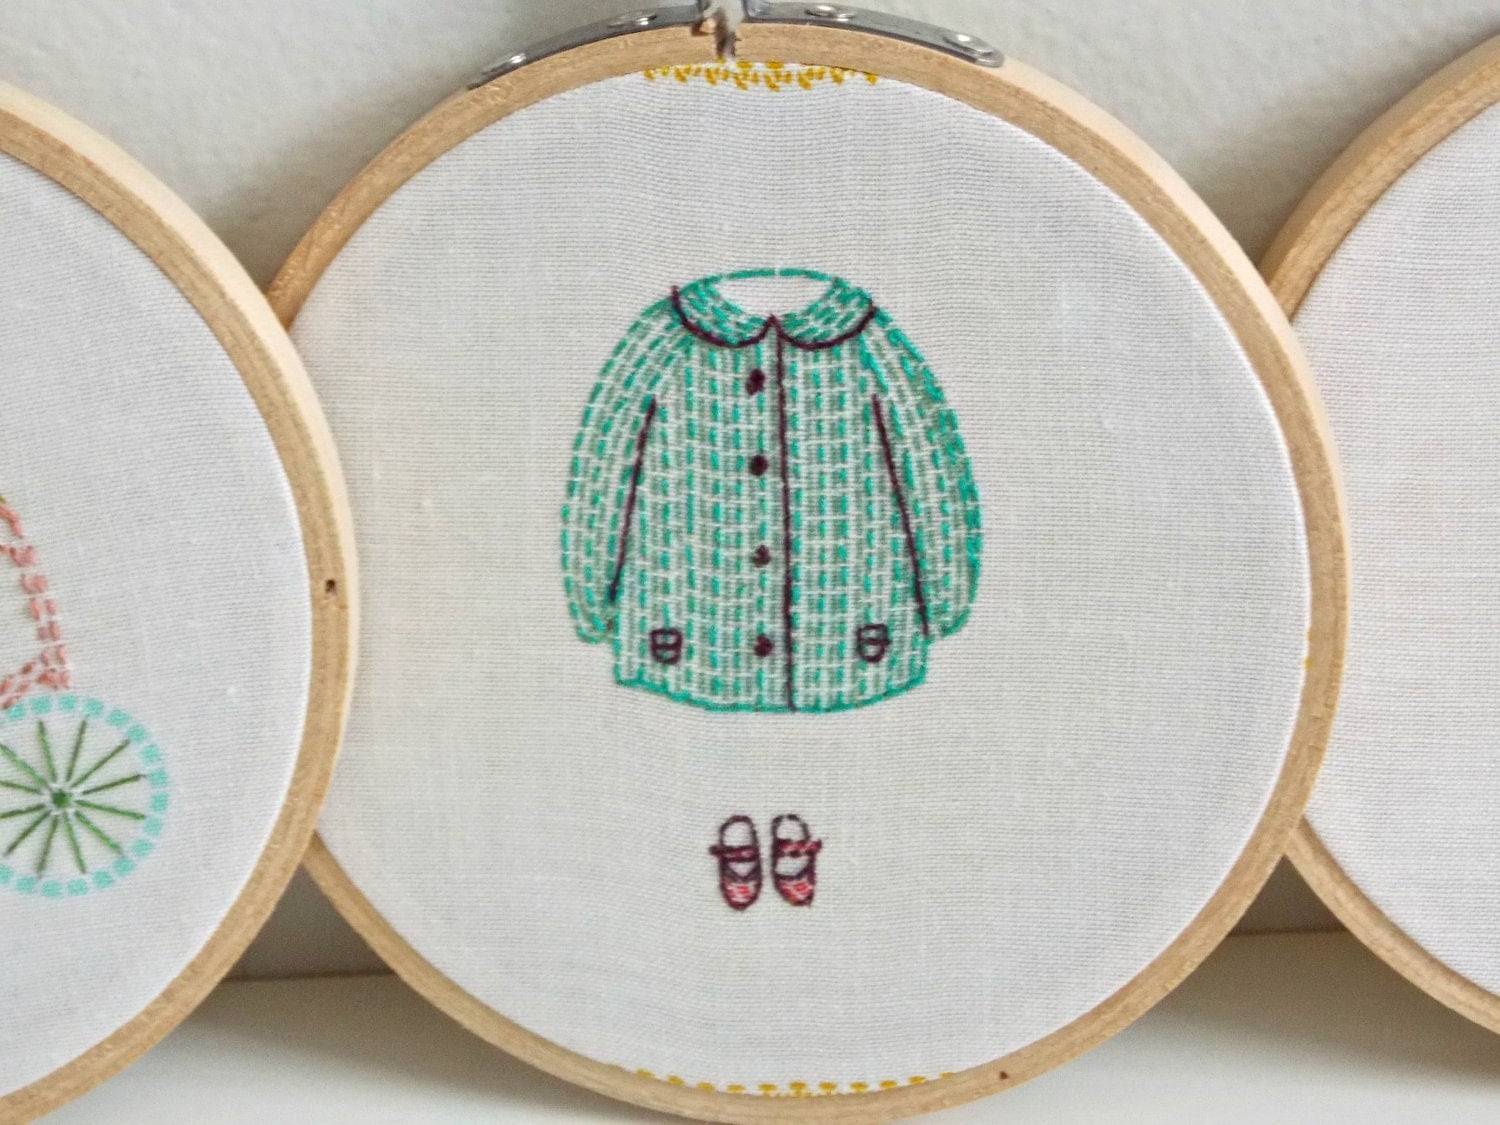 Wall art embroidery hoop decor by